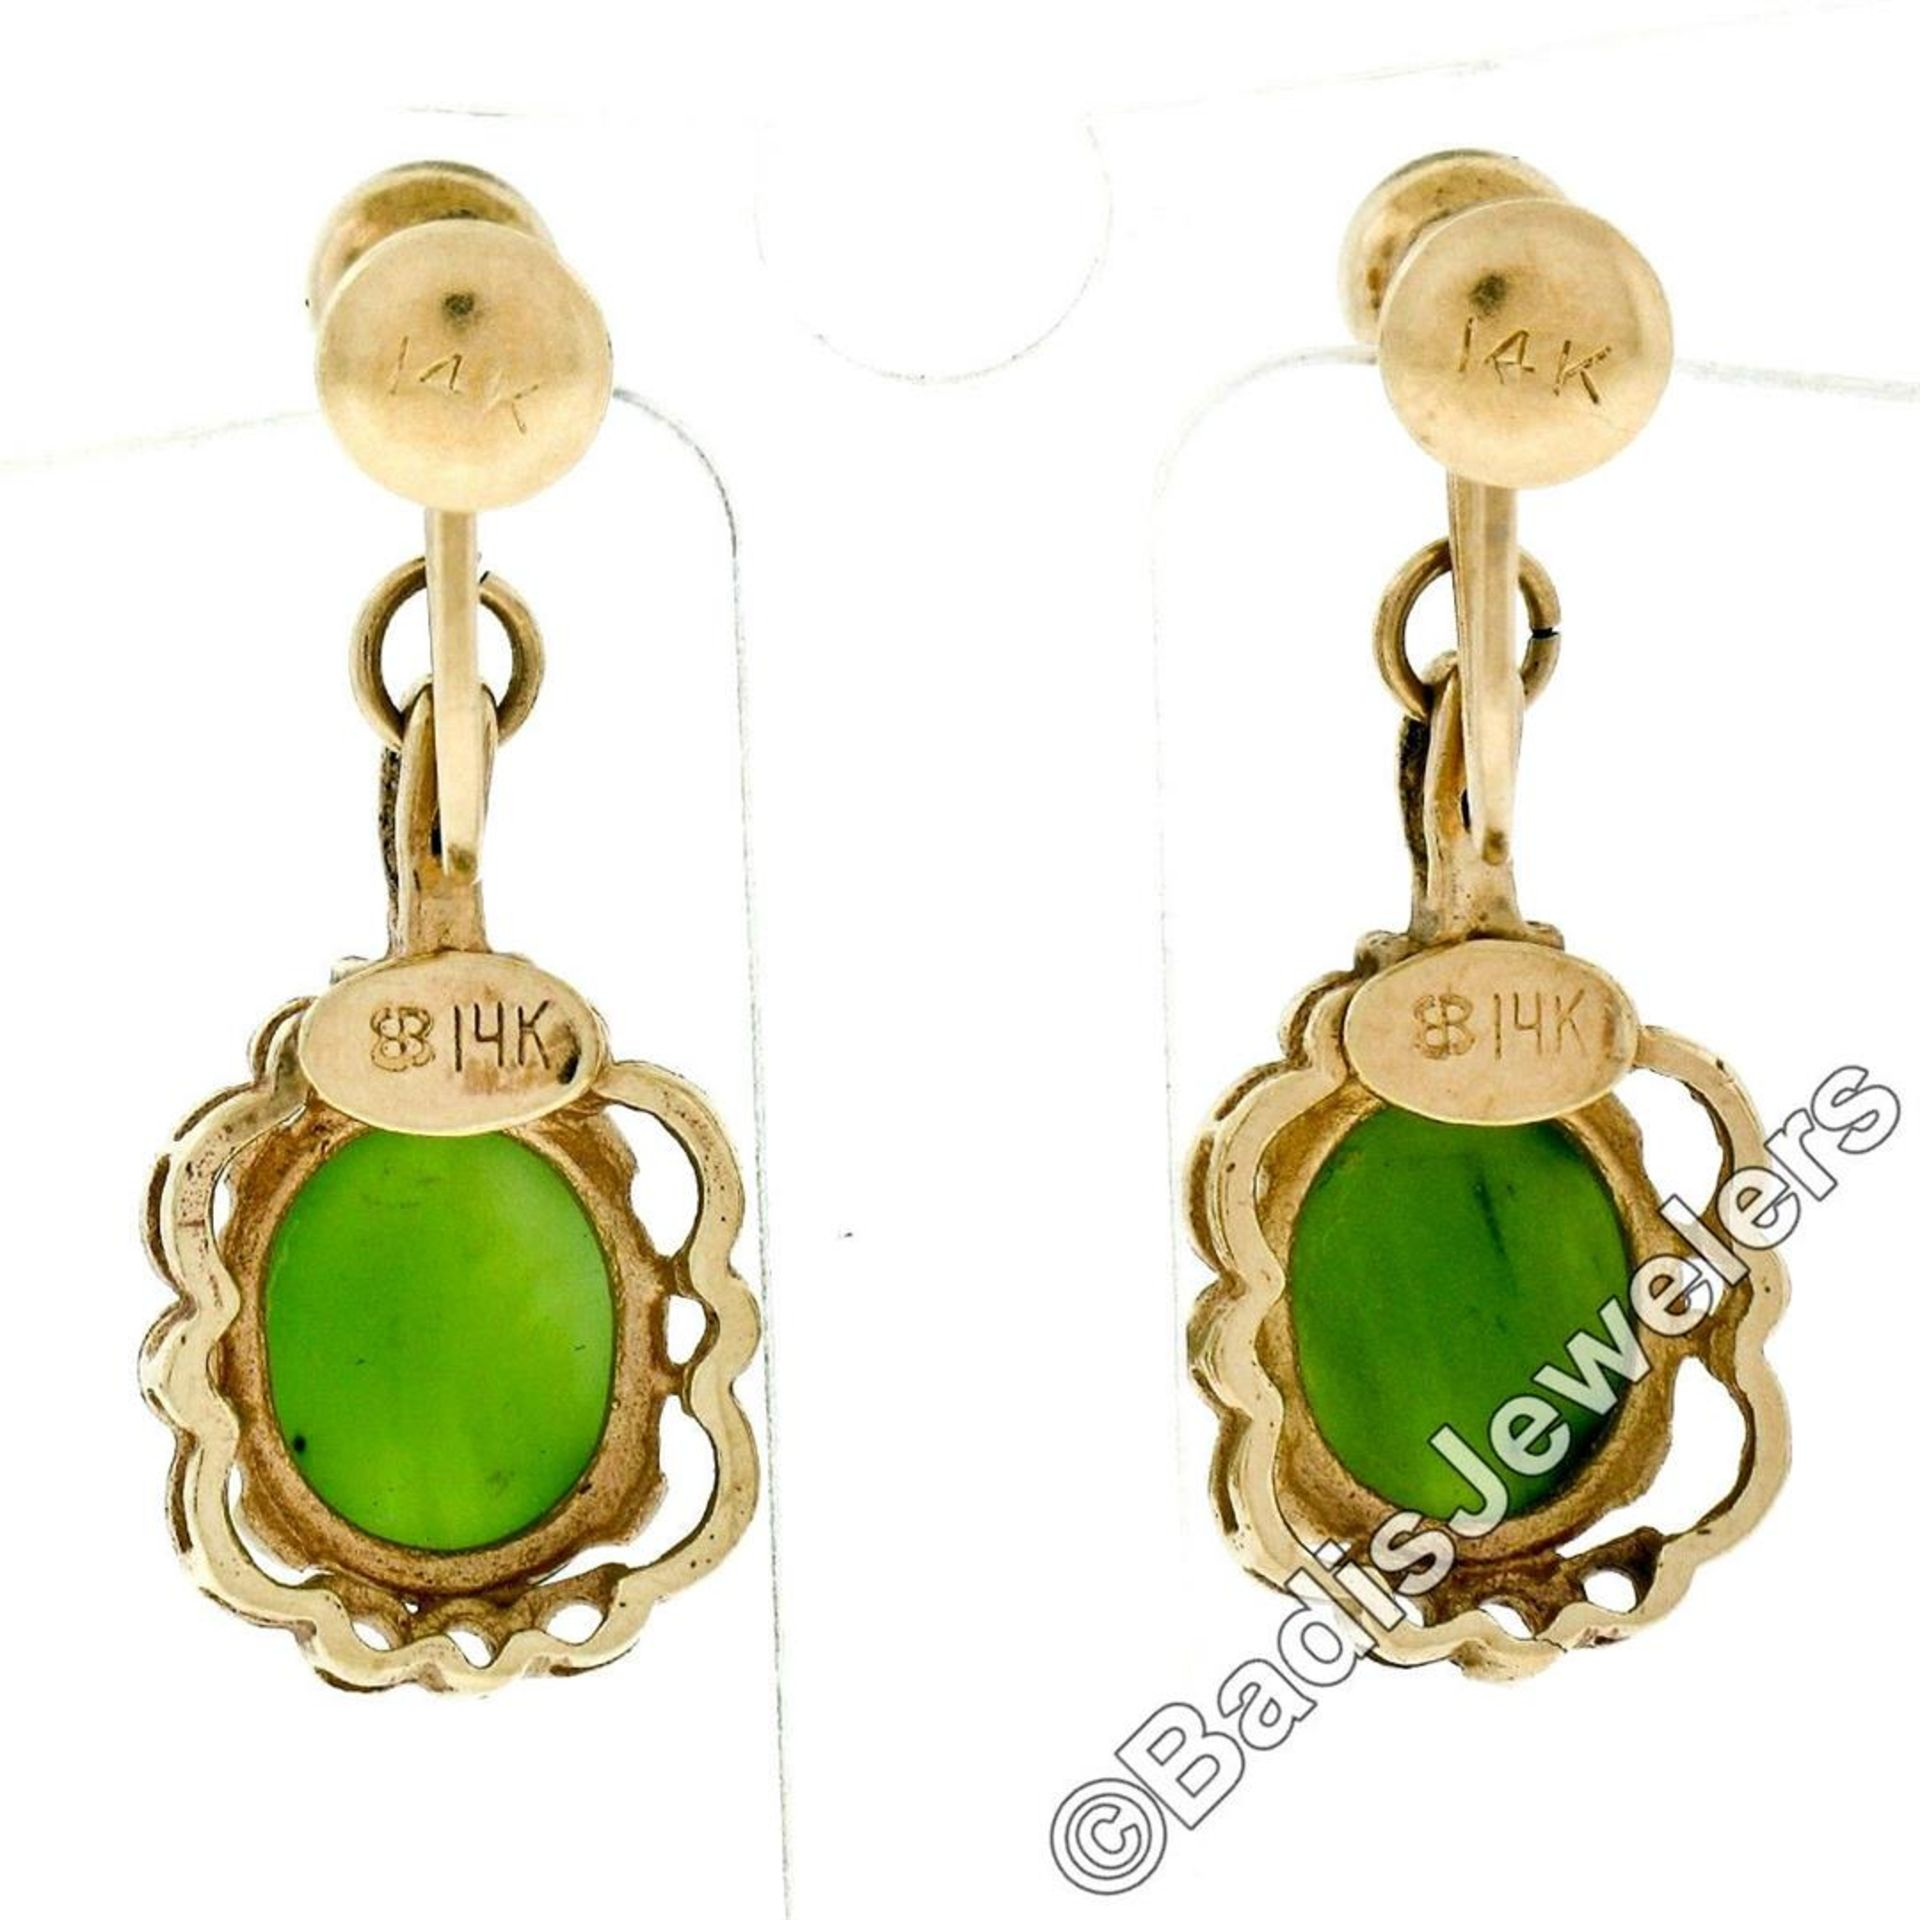 Vintage 14kt Yellow Gold Oval Green Jade Non Pierced Earrings - Image 6 of 6